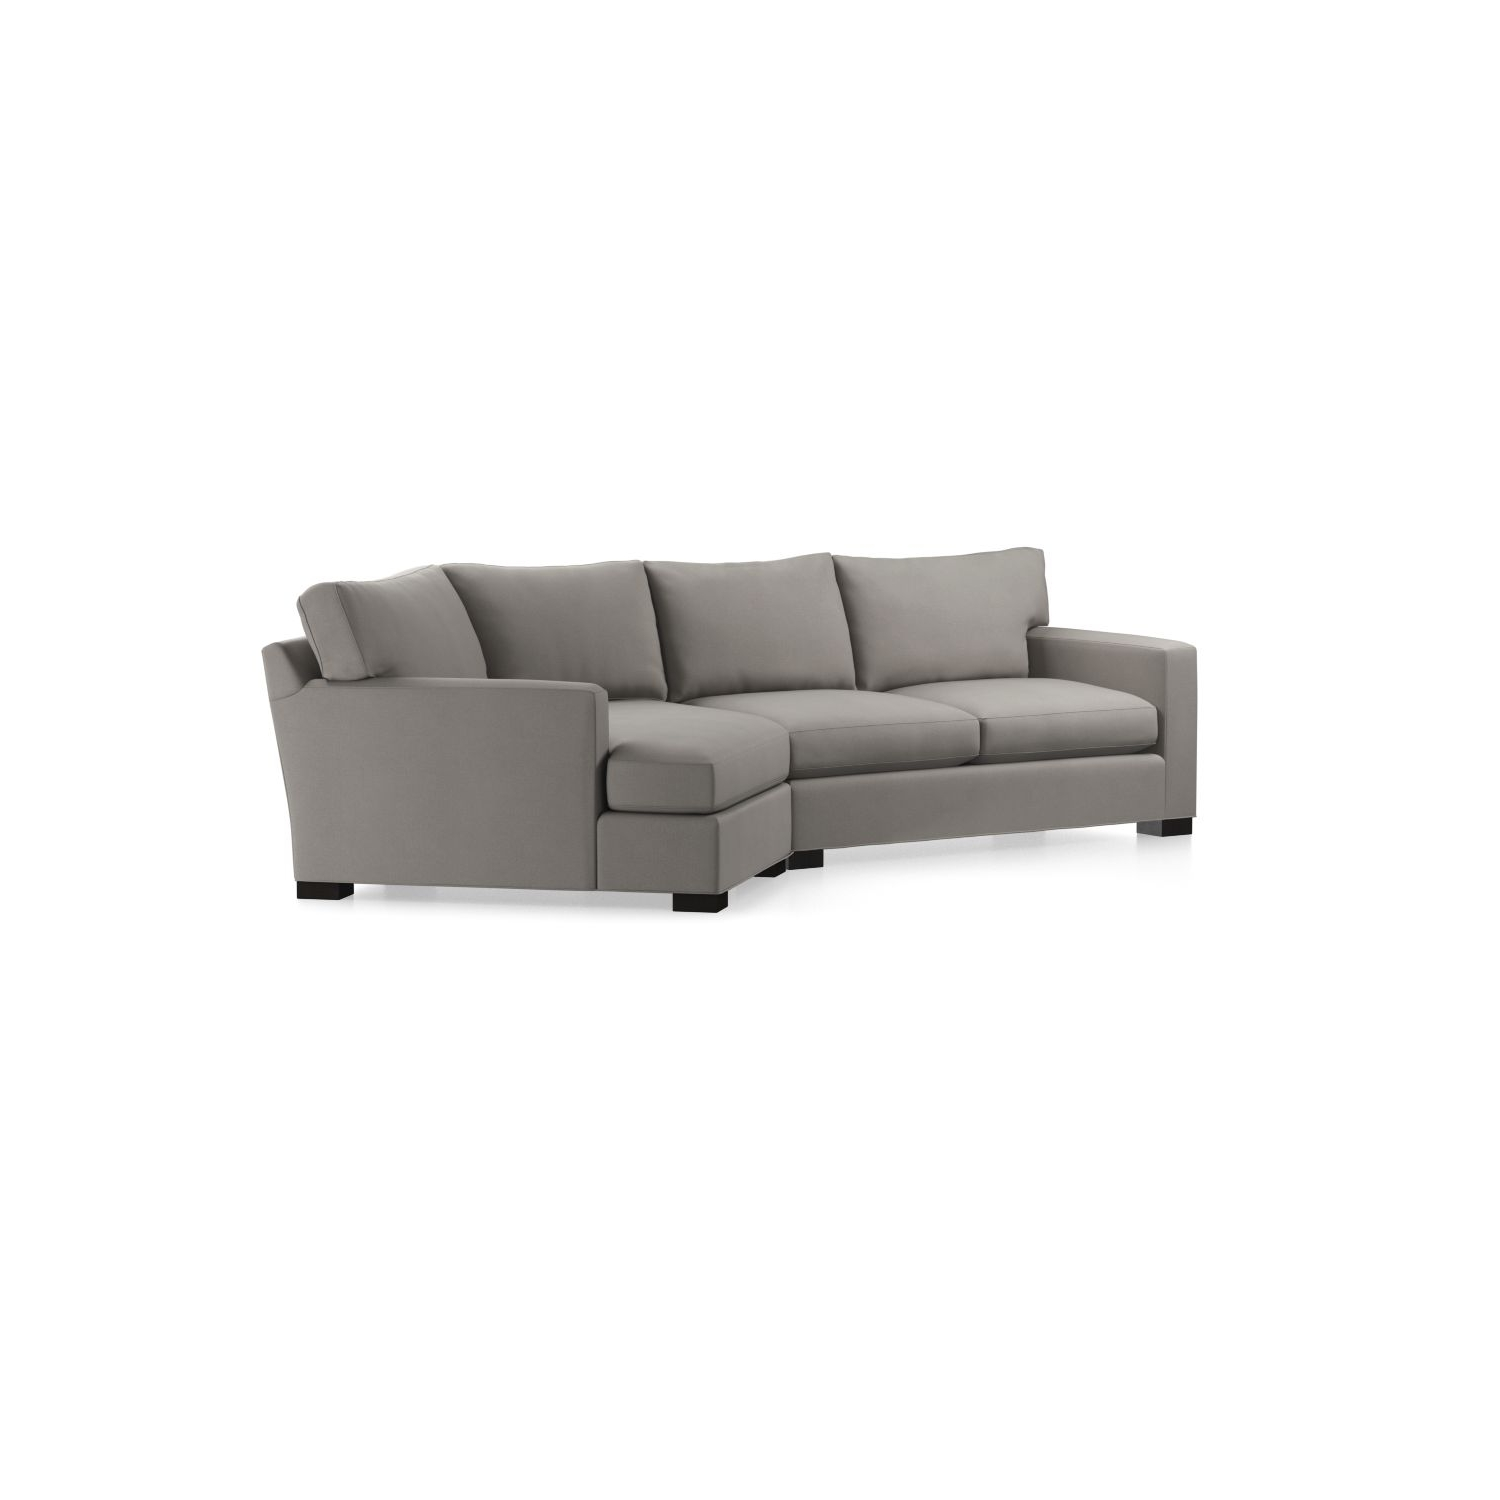 Best And Newest Angled Chaise Sofas Inside Axis Ii 2 Piece Right Arm Angled Chaise Sectional Sofa In Axis (View 6 of 15)